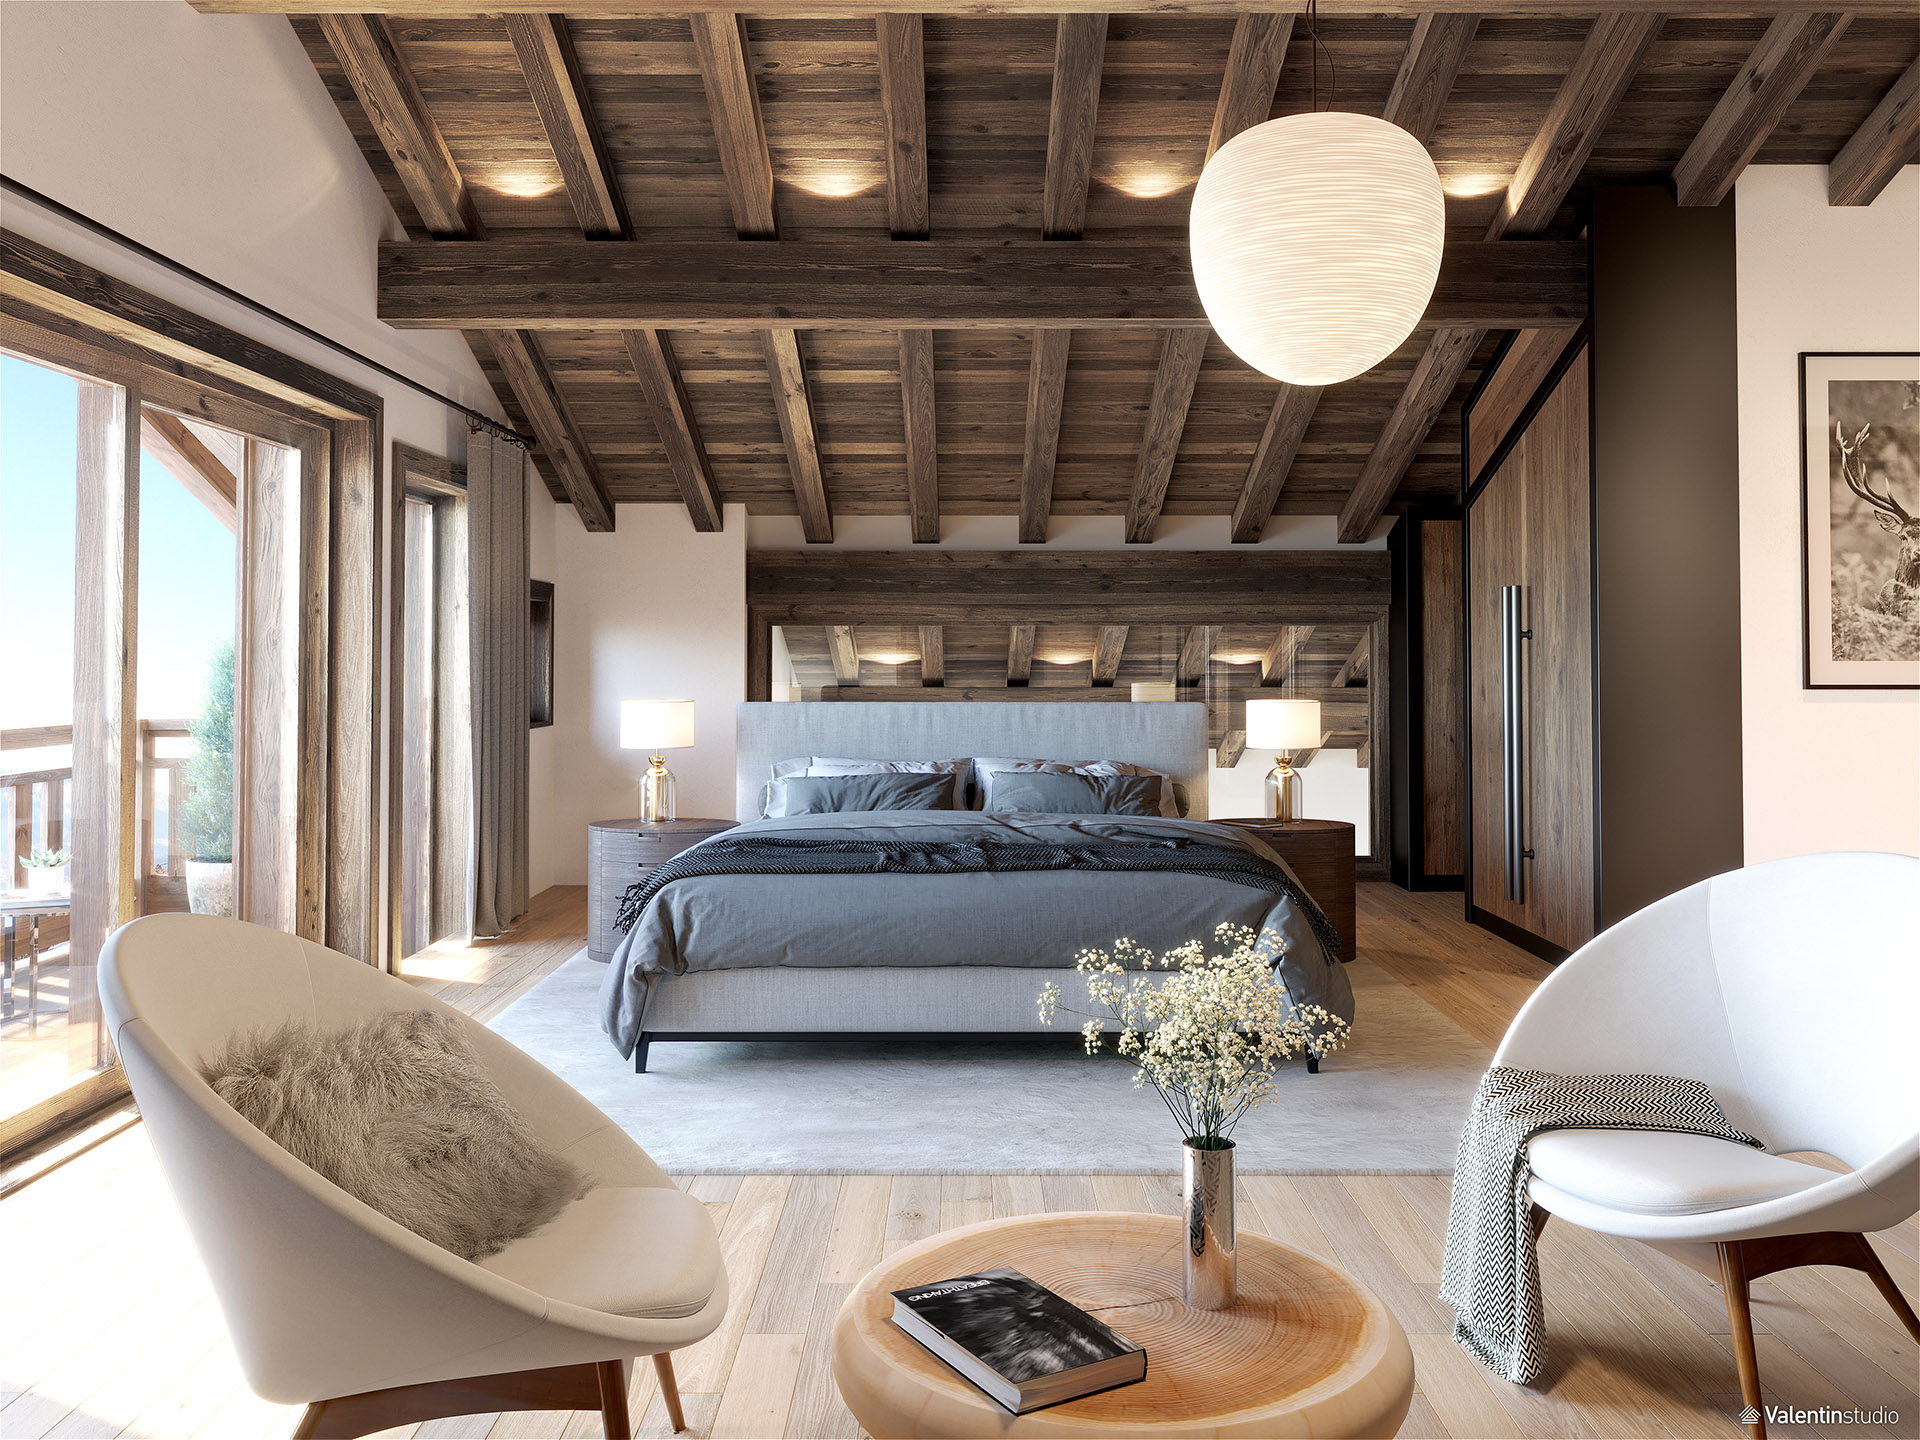 3D graphics of a modern chalet room with living area